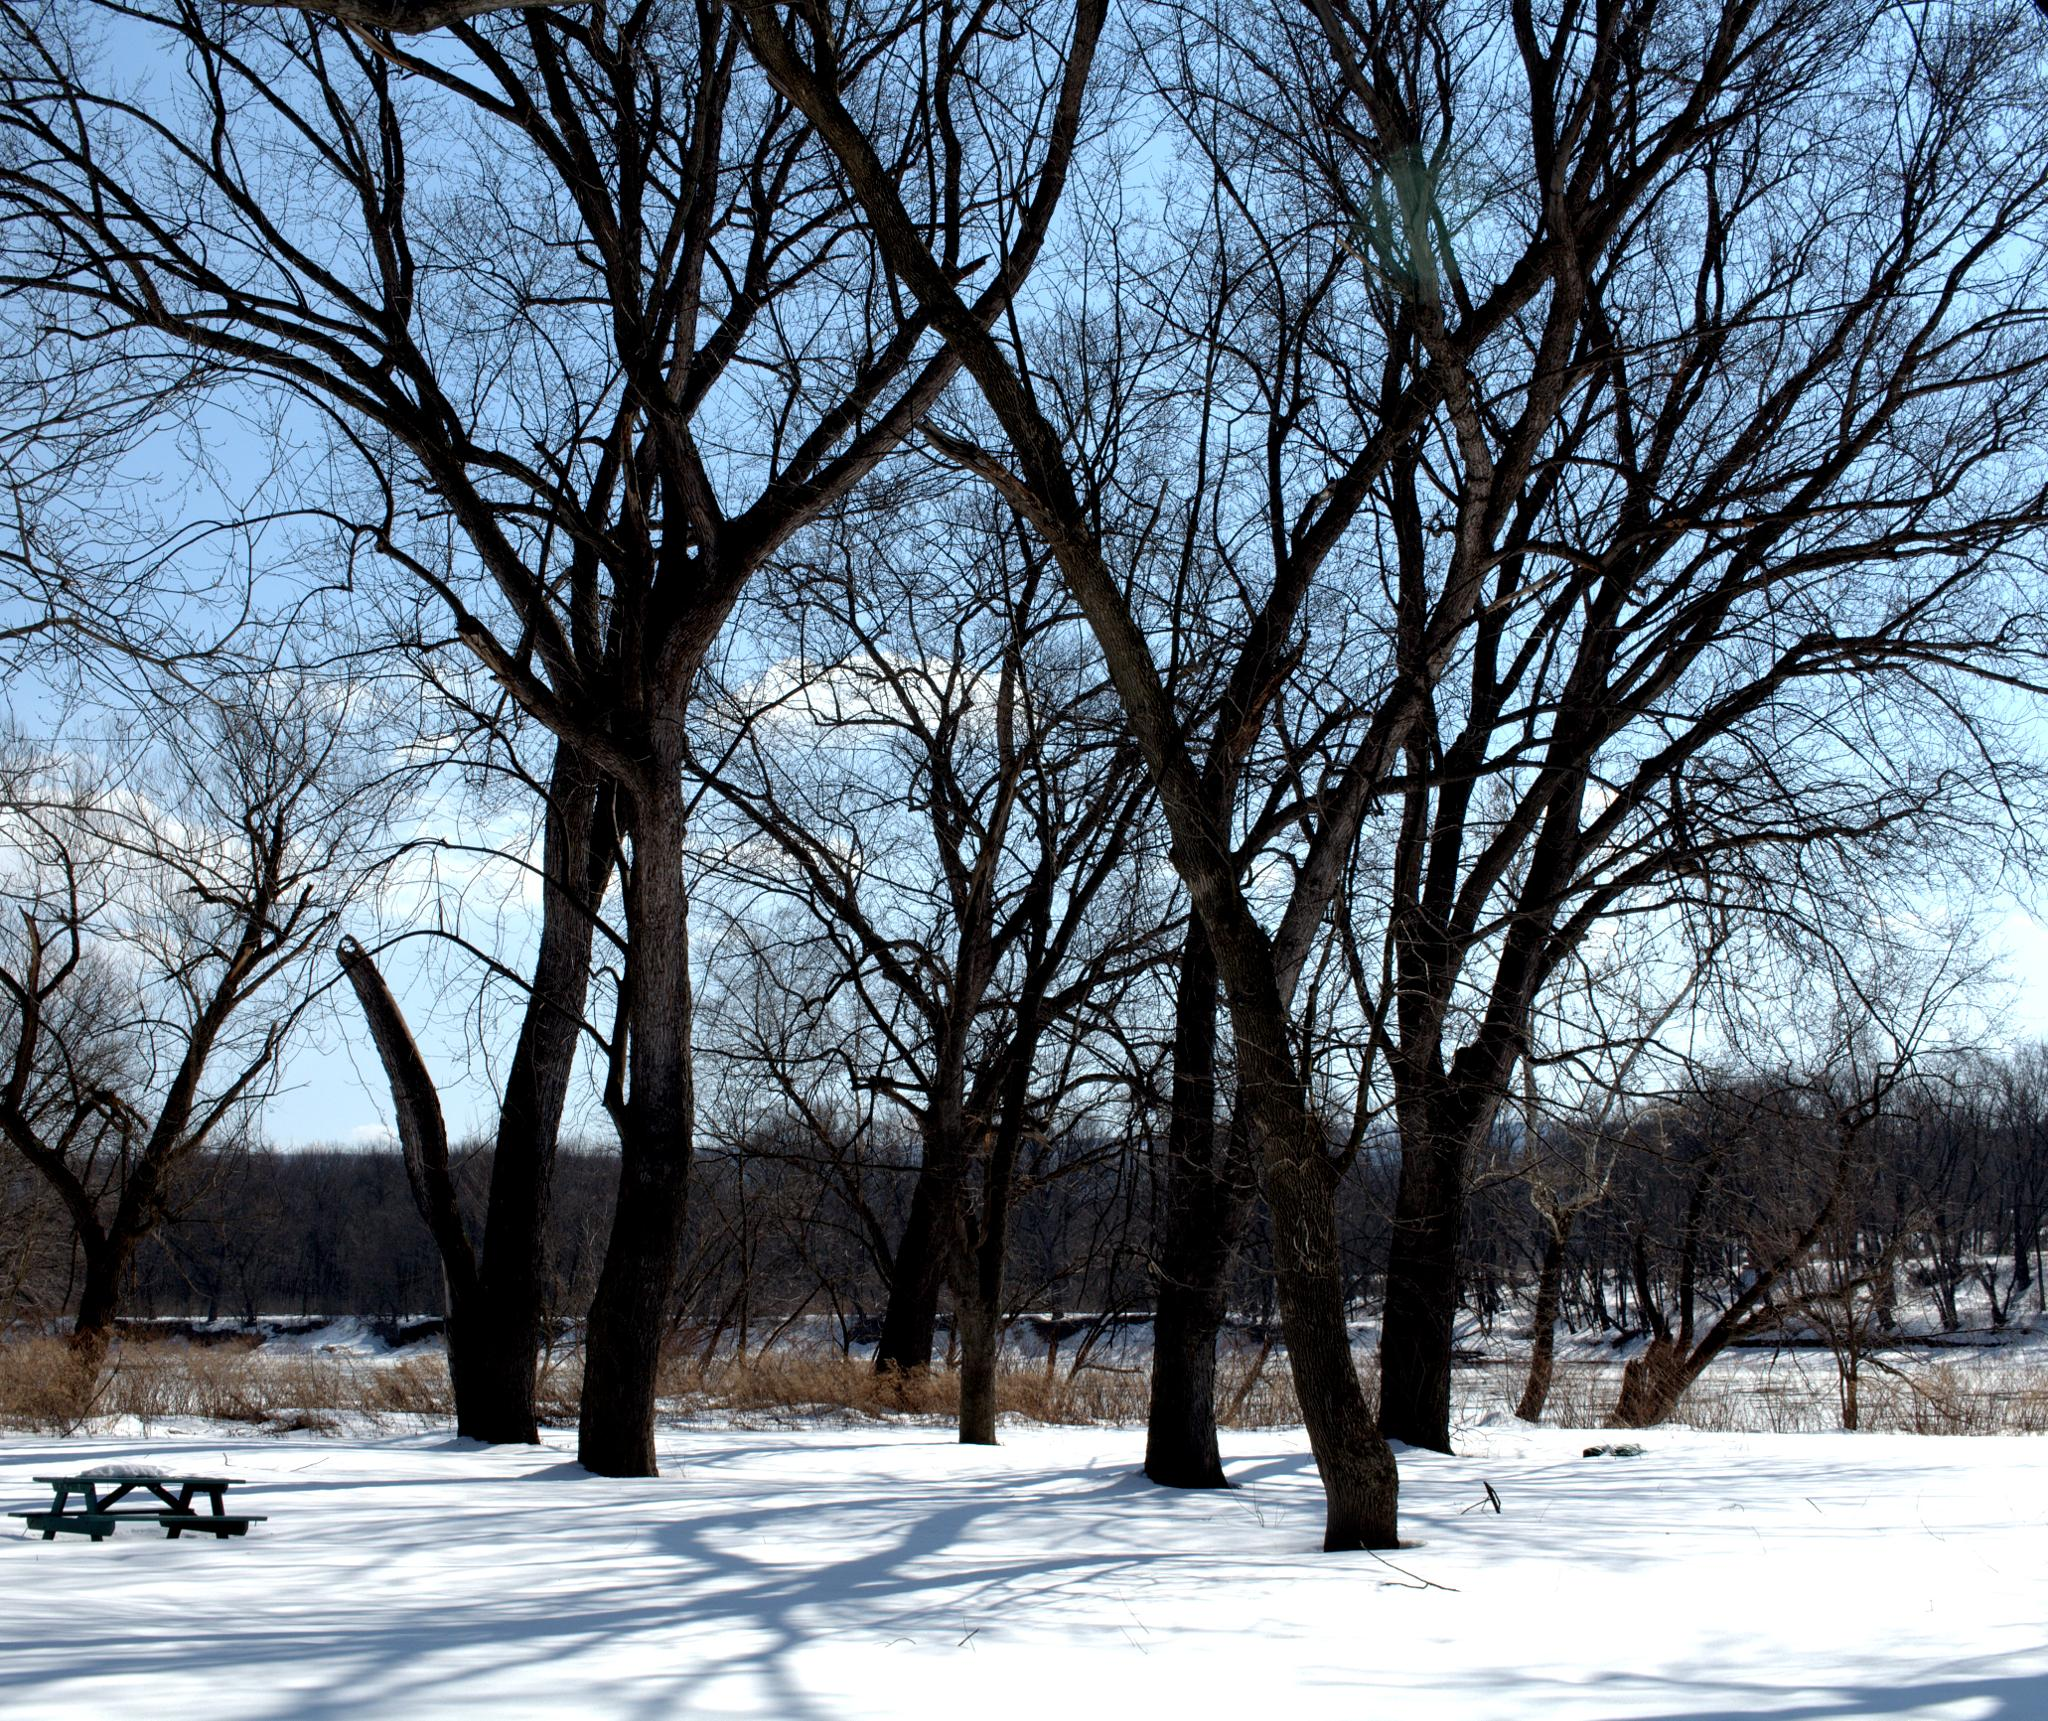 A Winter Picnic With My Camera by Shane Repasky